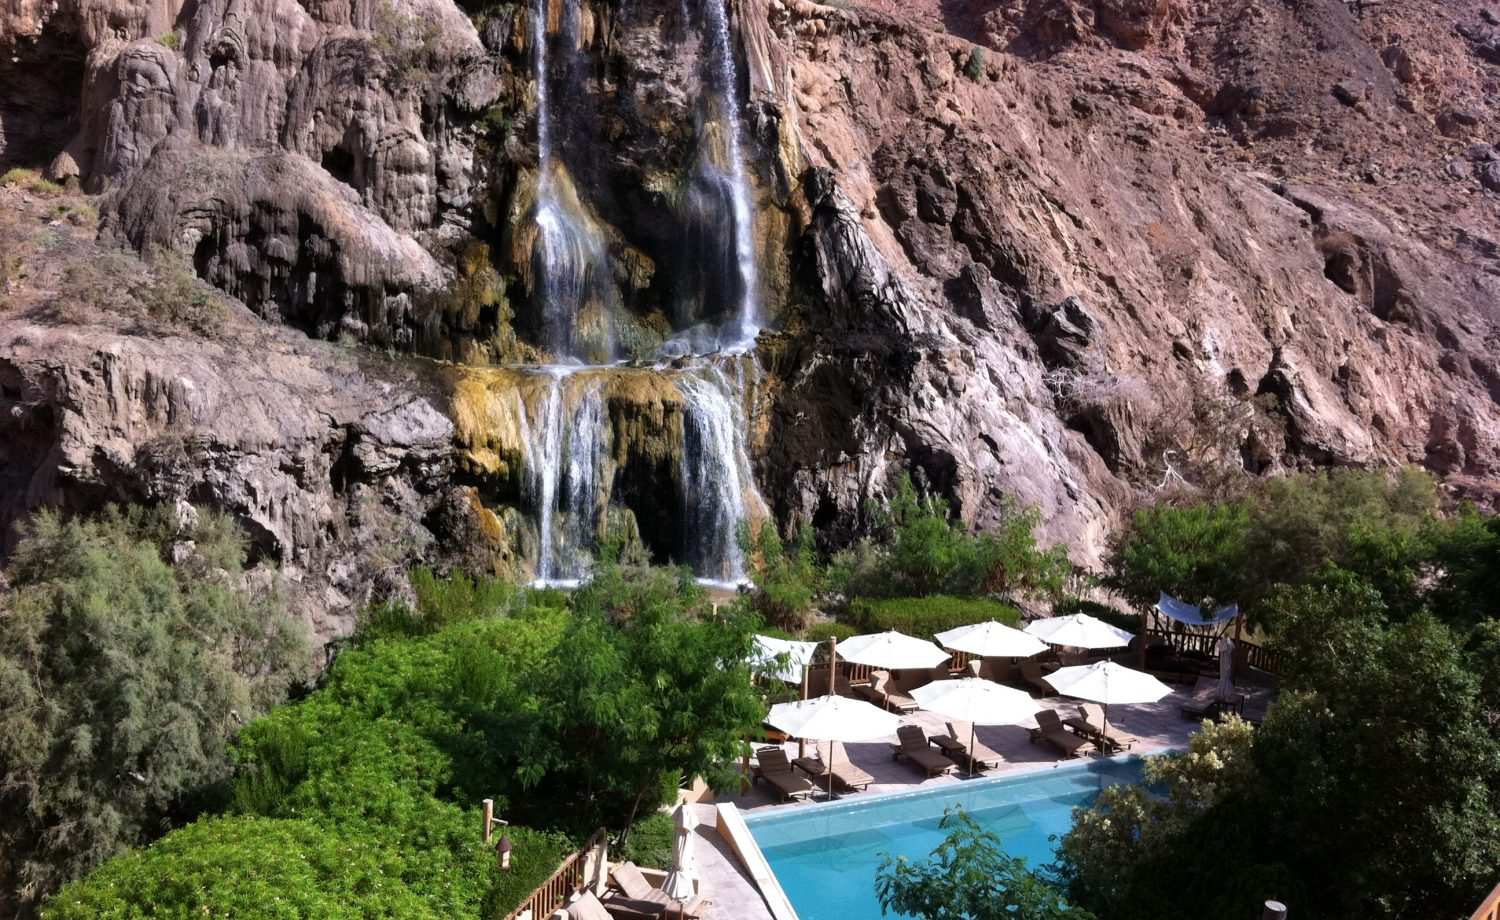 ma-in-hot-springs-falls-photo